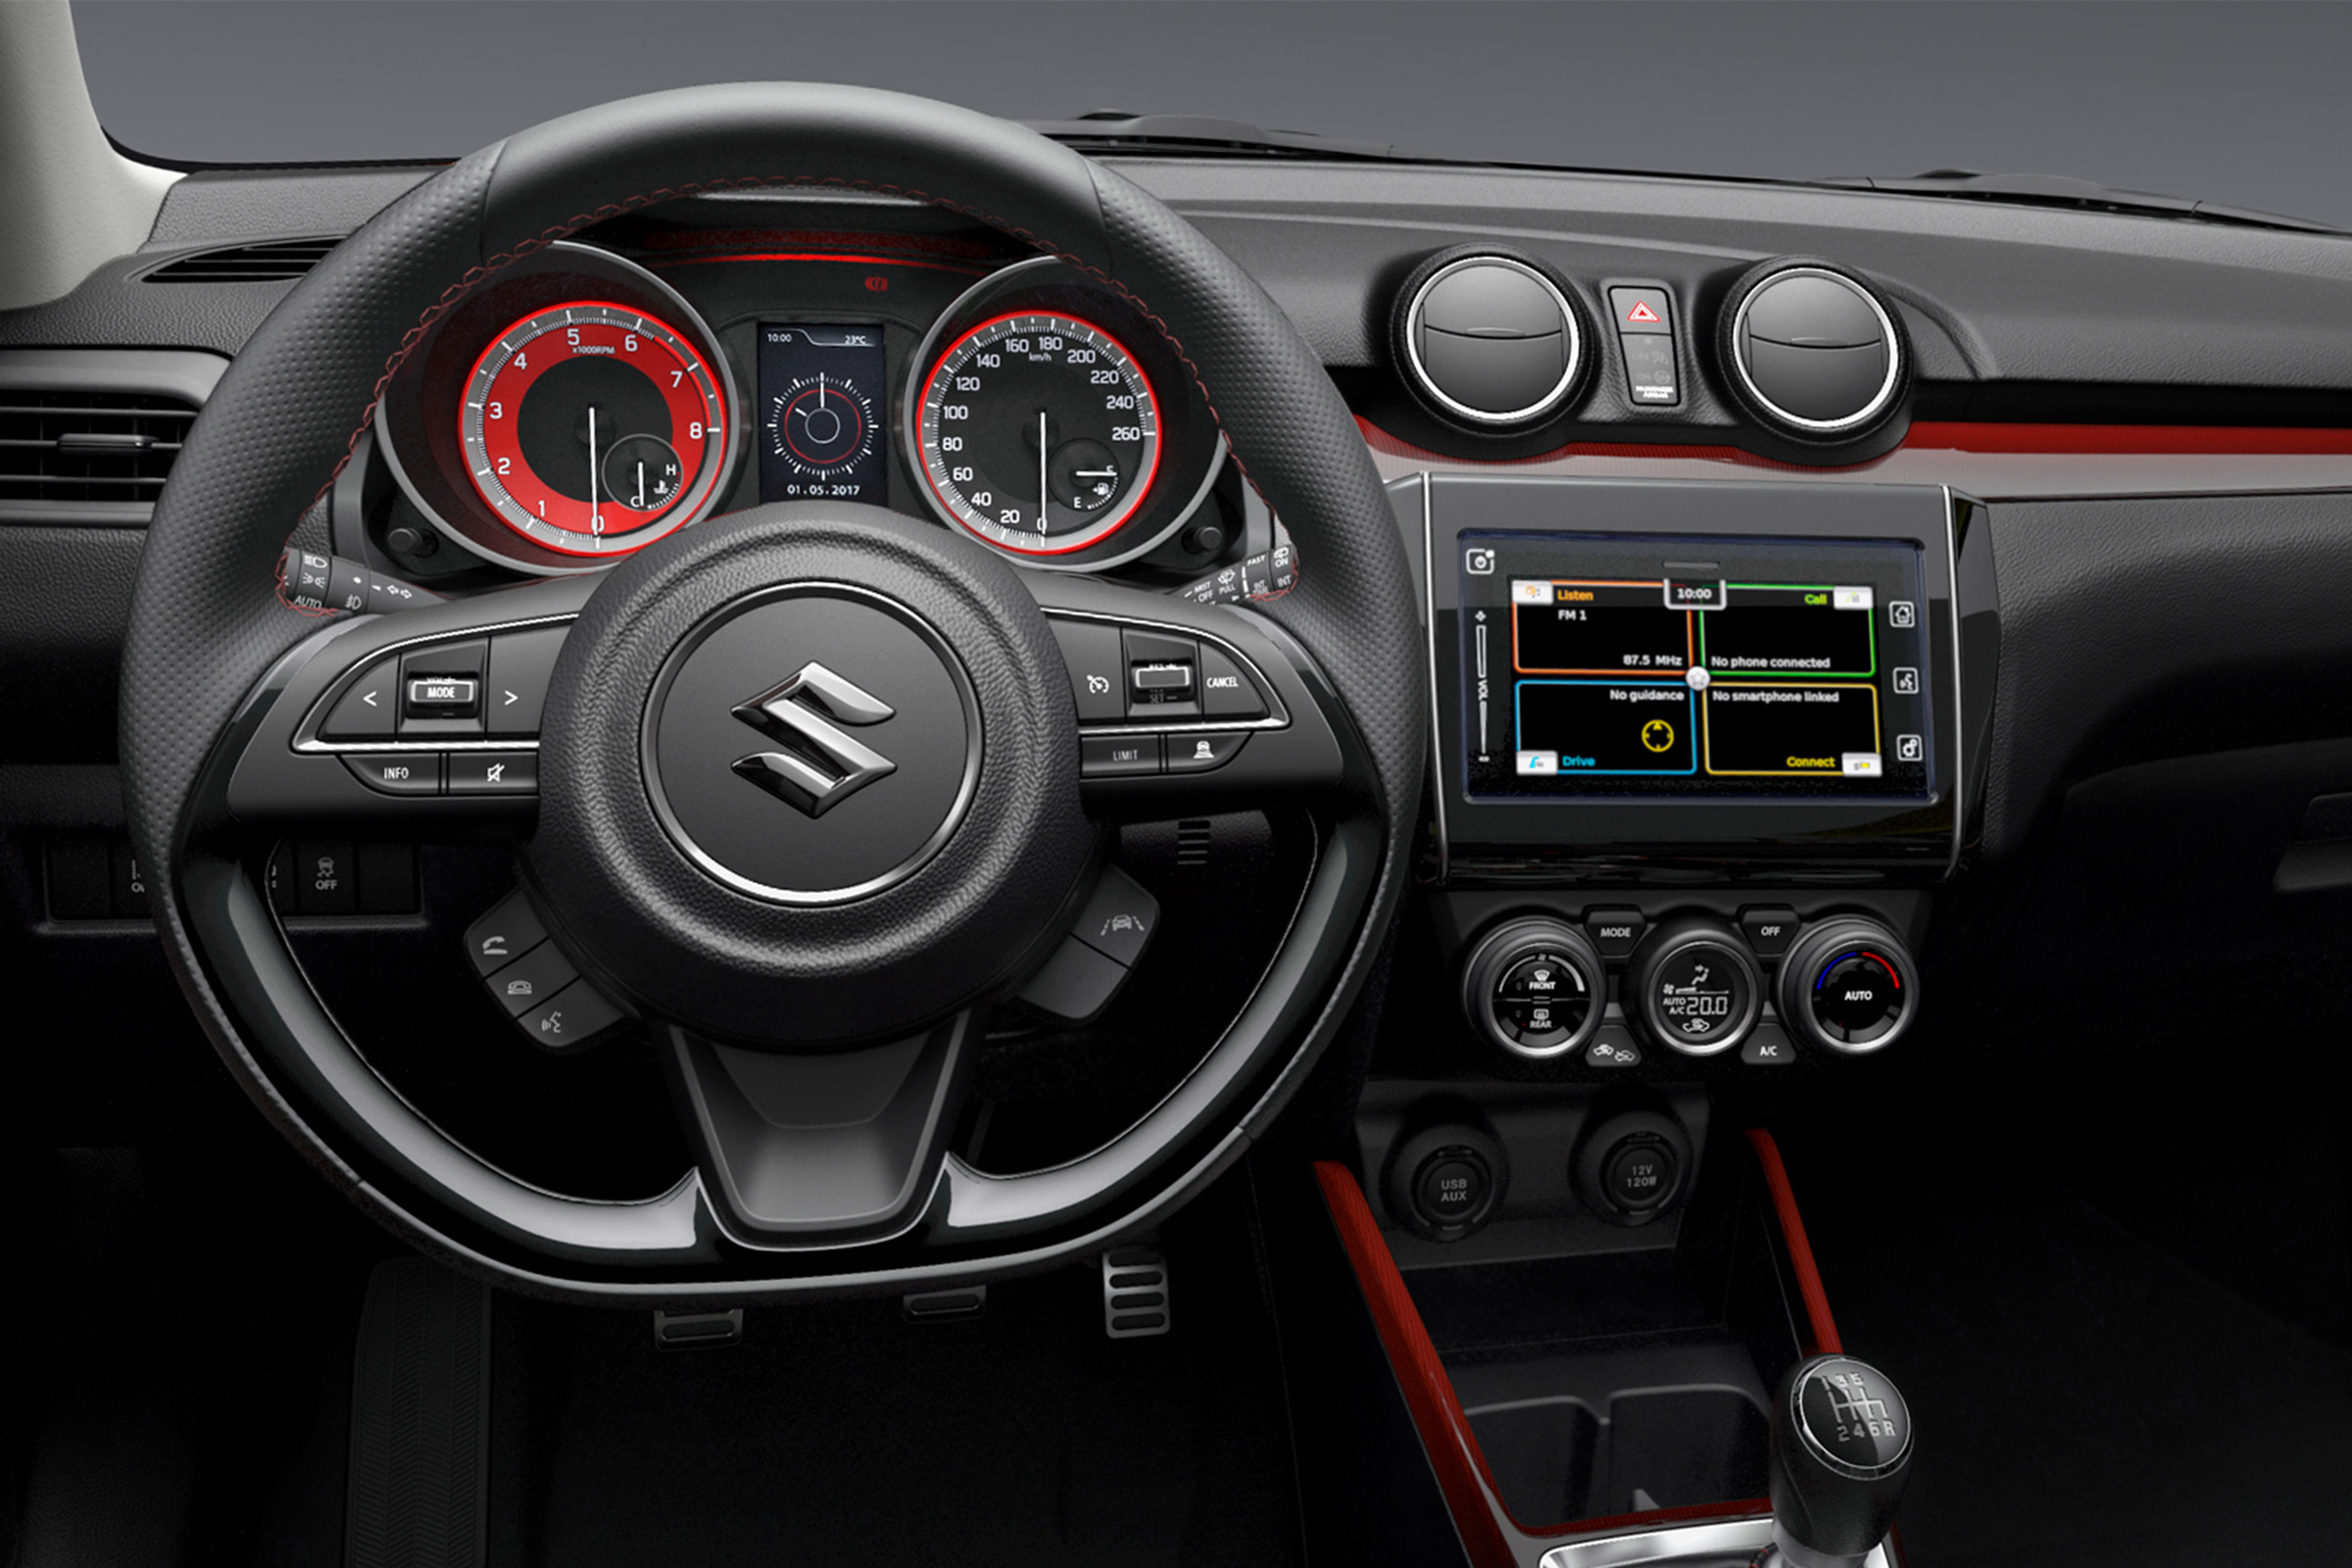 2018 Suzuki Swift Sport interior confirms manual, 1.0T suspected ...